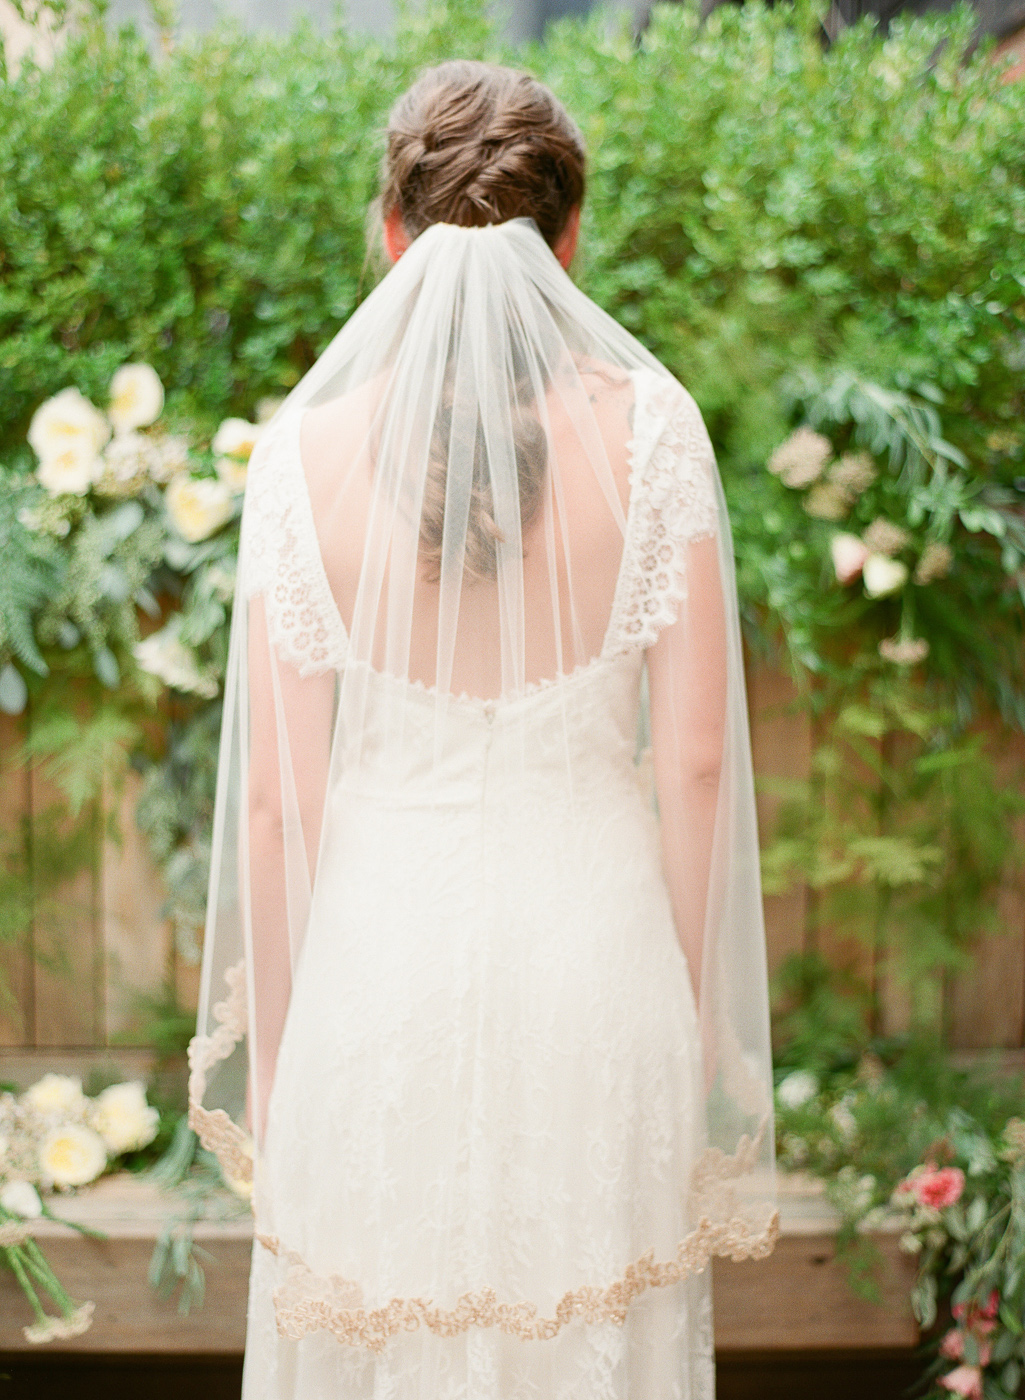 rose gold beaded veil back detail by hushed commotion